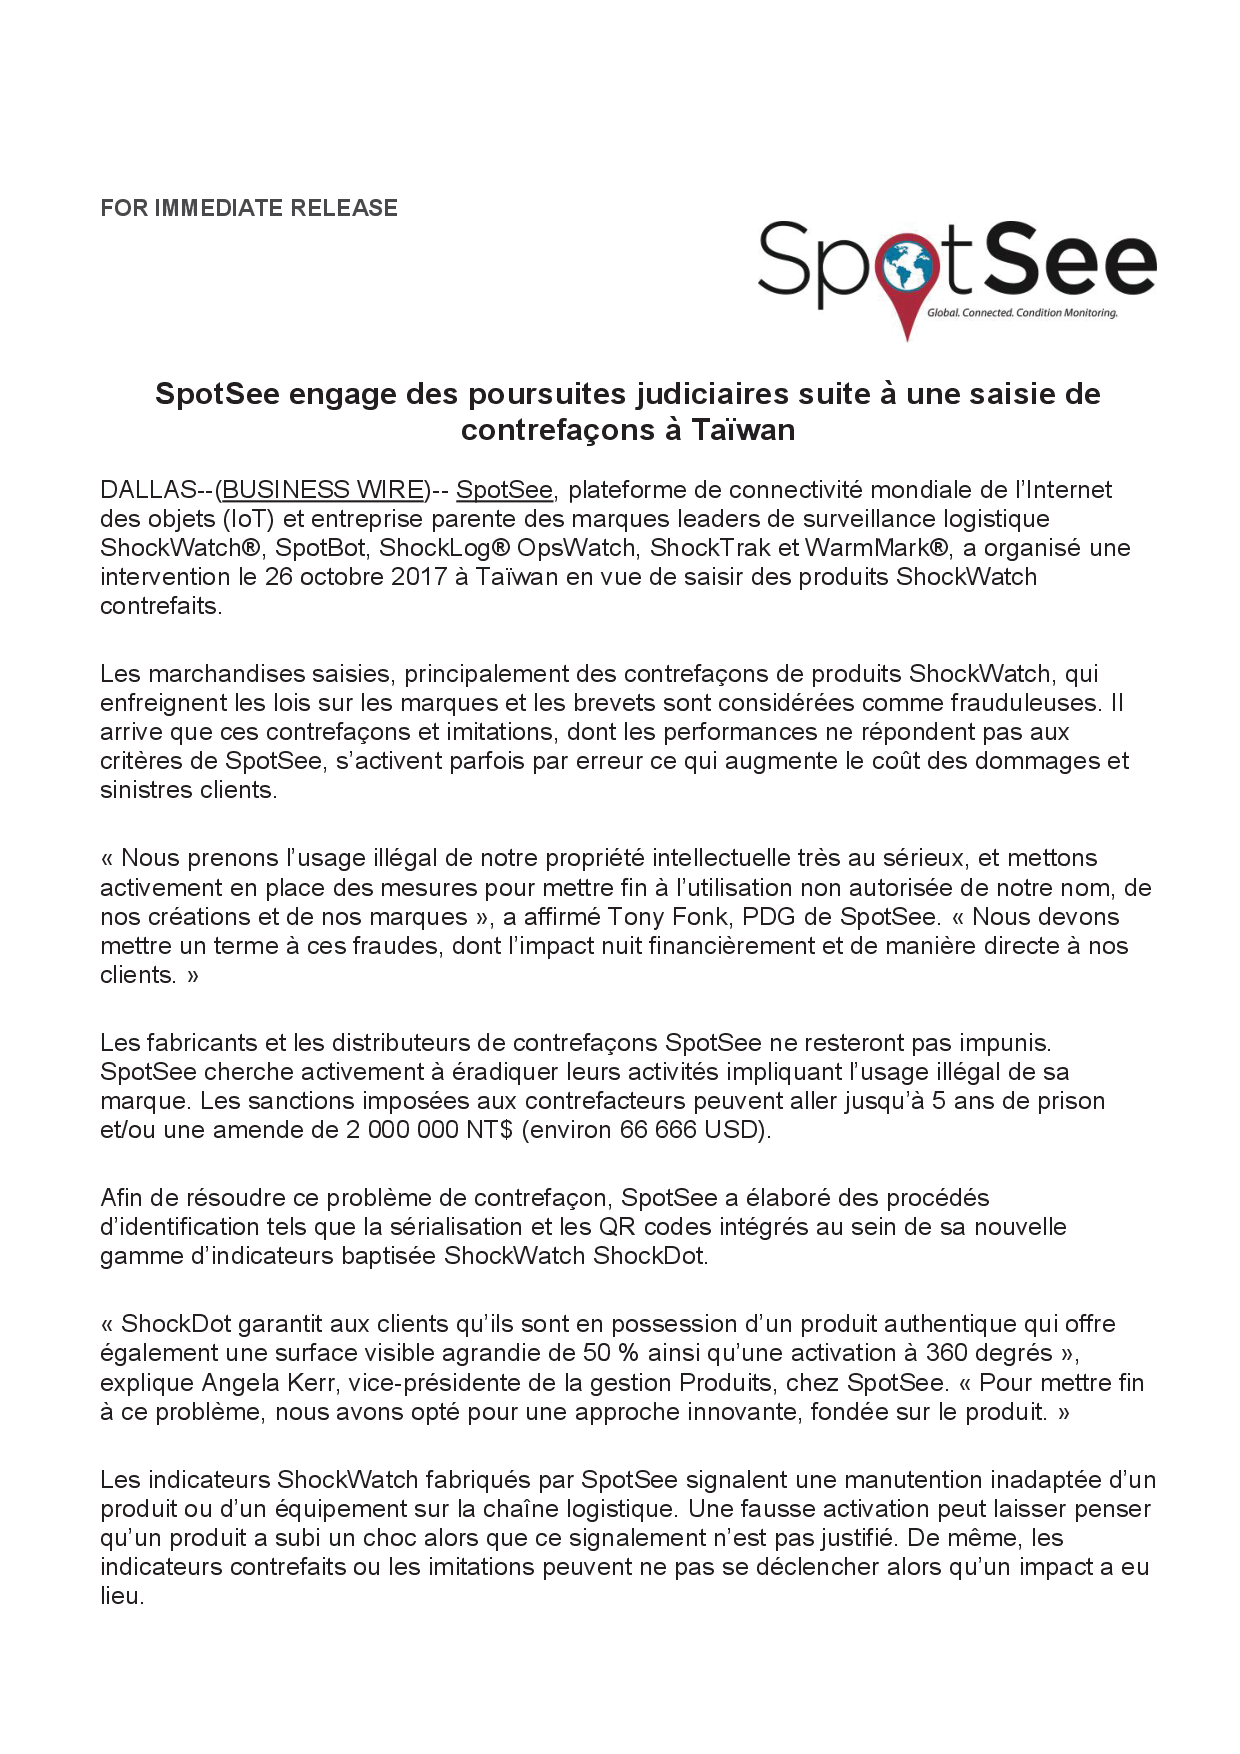 poursuites-judiciaires-contrefacons-shockwatch-spotsee